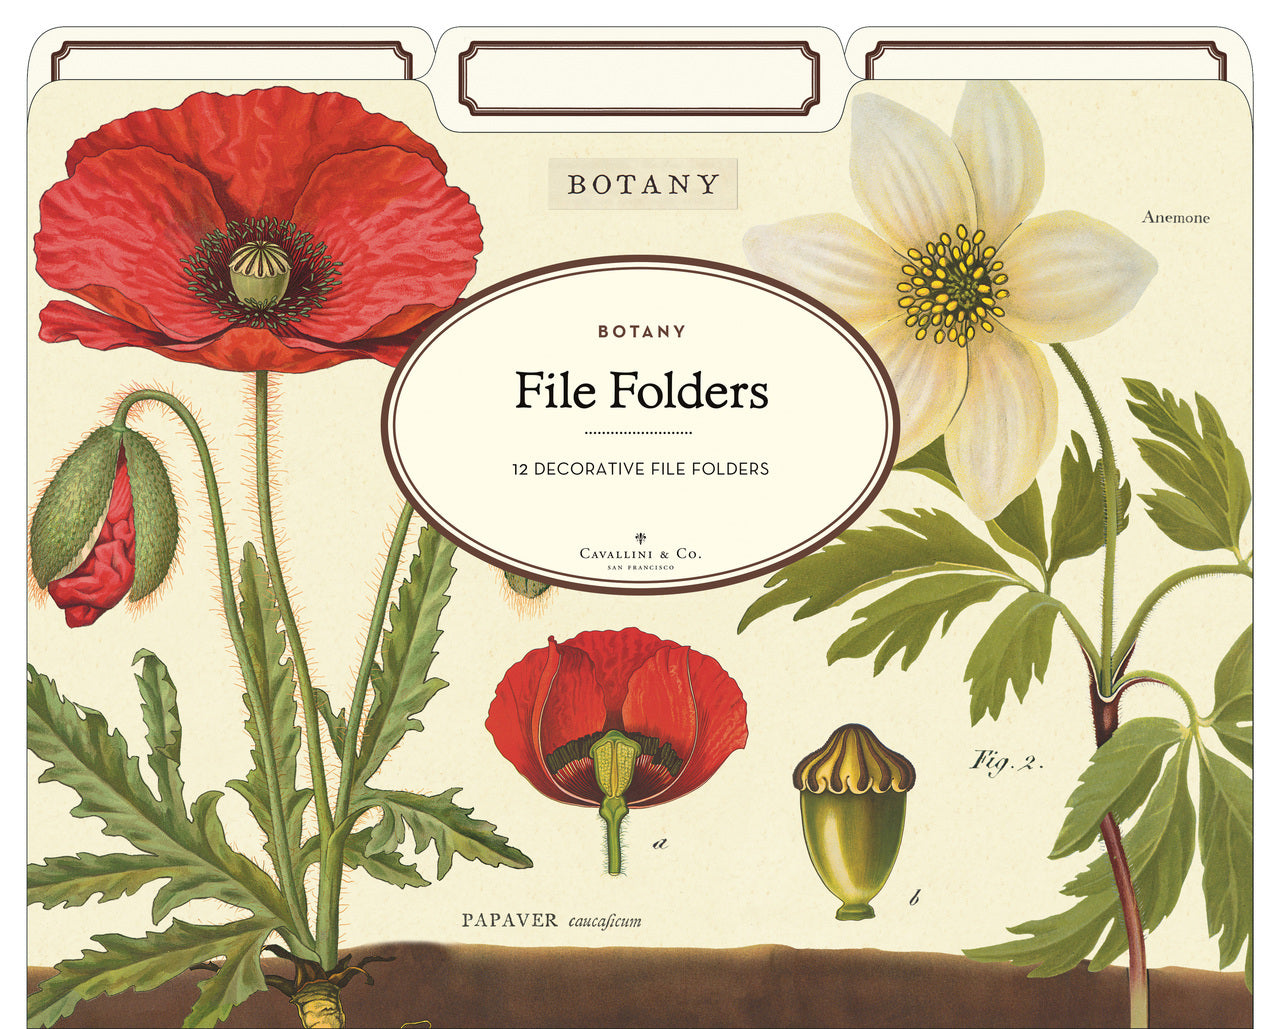 Botanical File Folder set by Cavallini & Co. features vintage natural history images form the Cavallini archives.